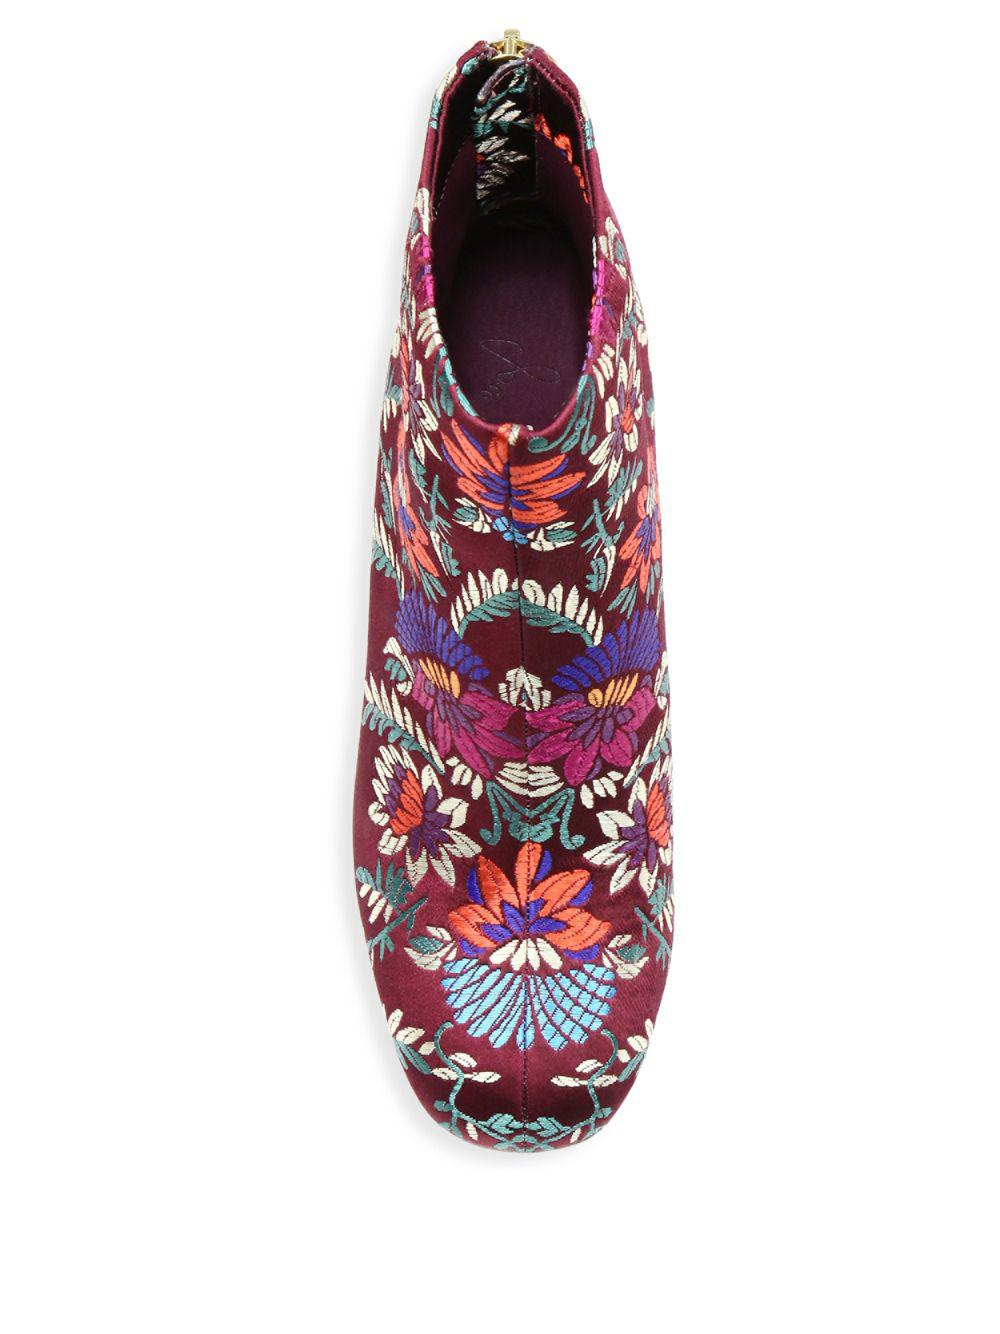 Joie Saleema Brocade Leather Ankle Boots in Plum (Red)